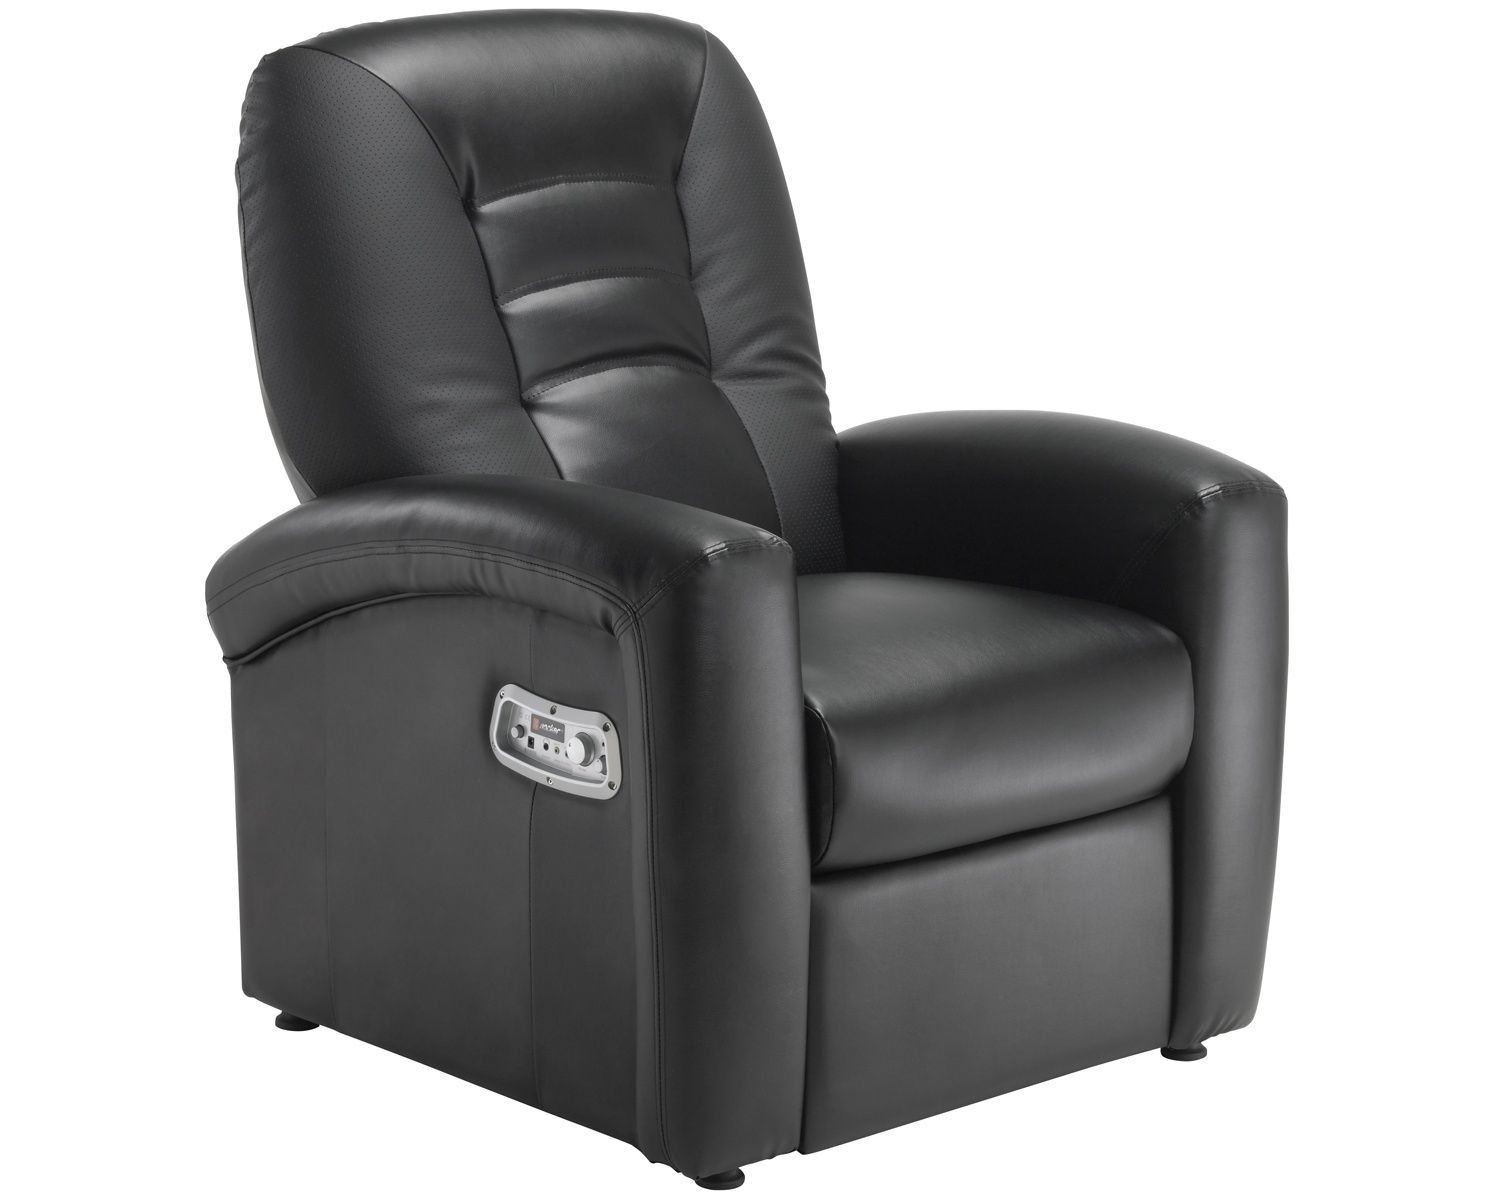 Cheap Game Chairs with Speakers  kids rooms home ideas